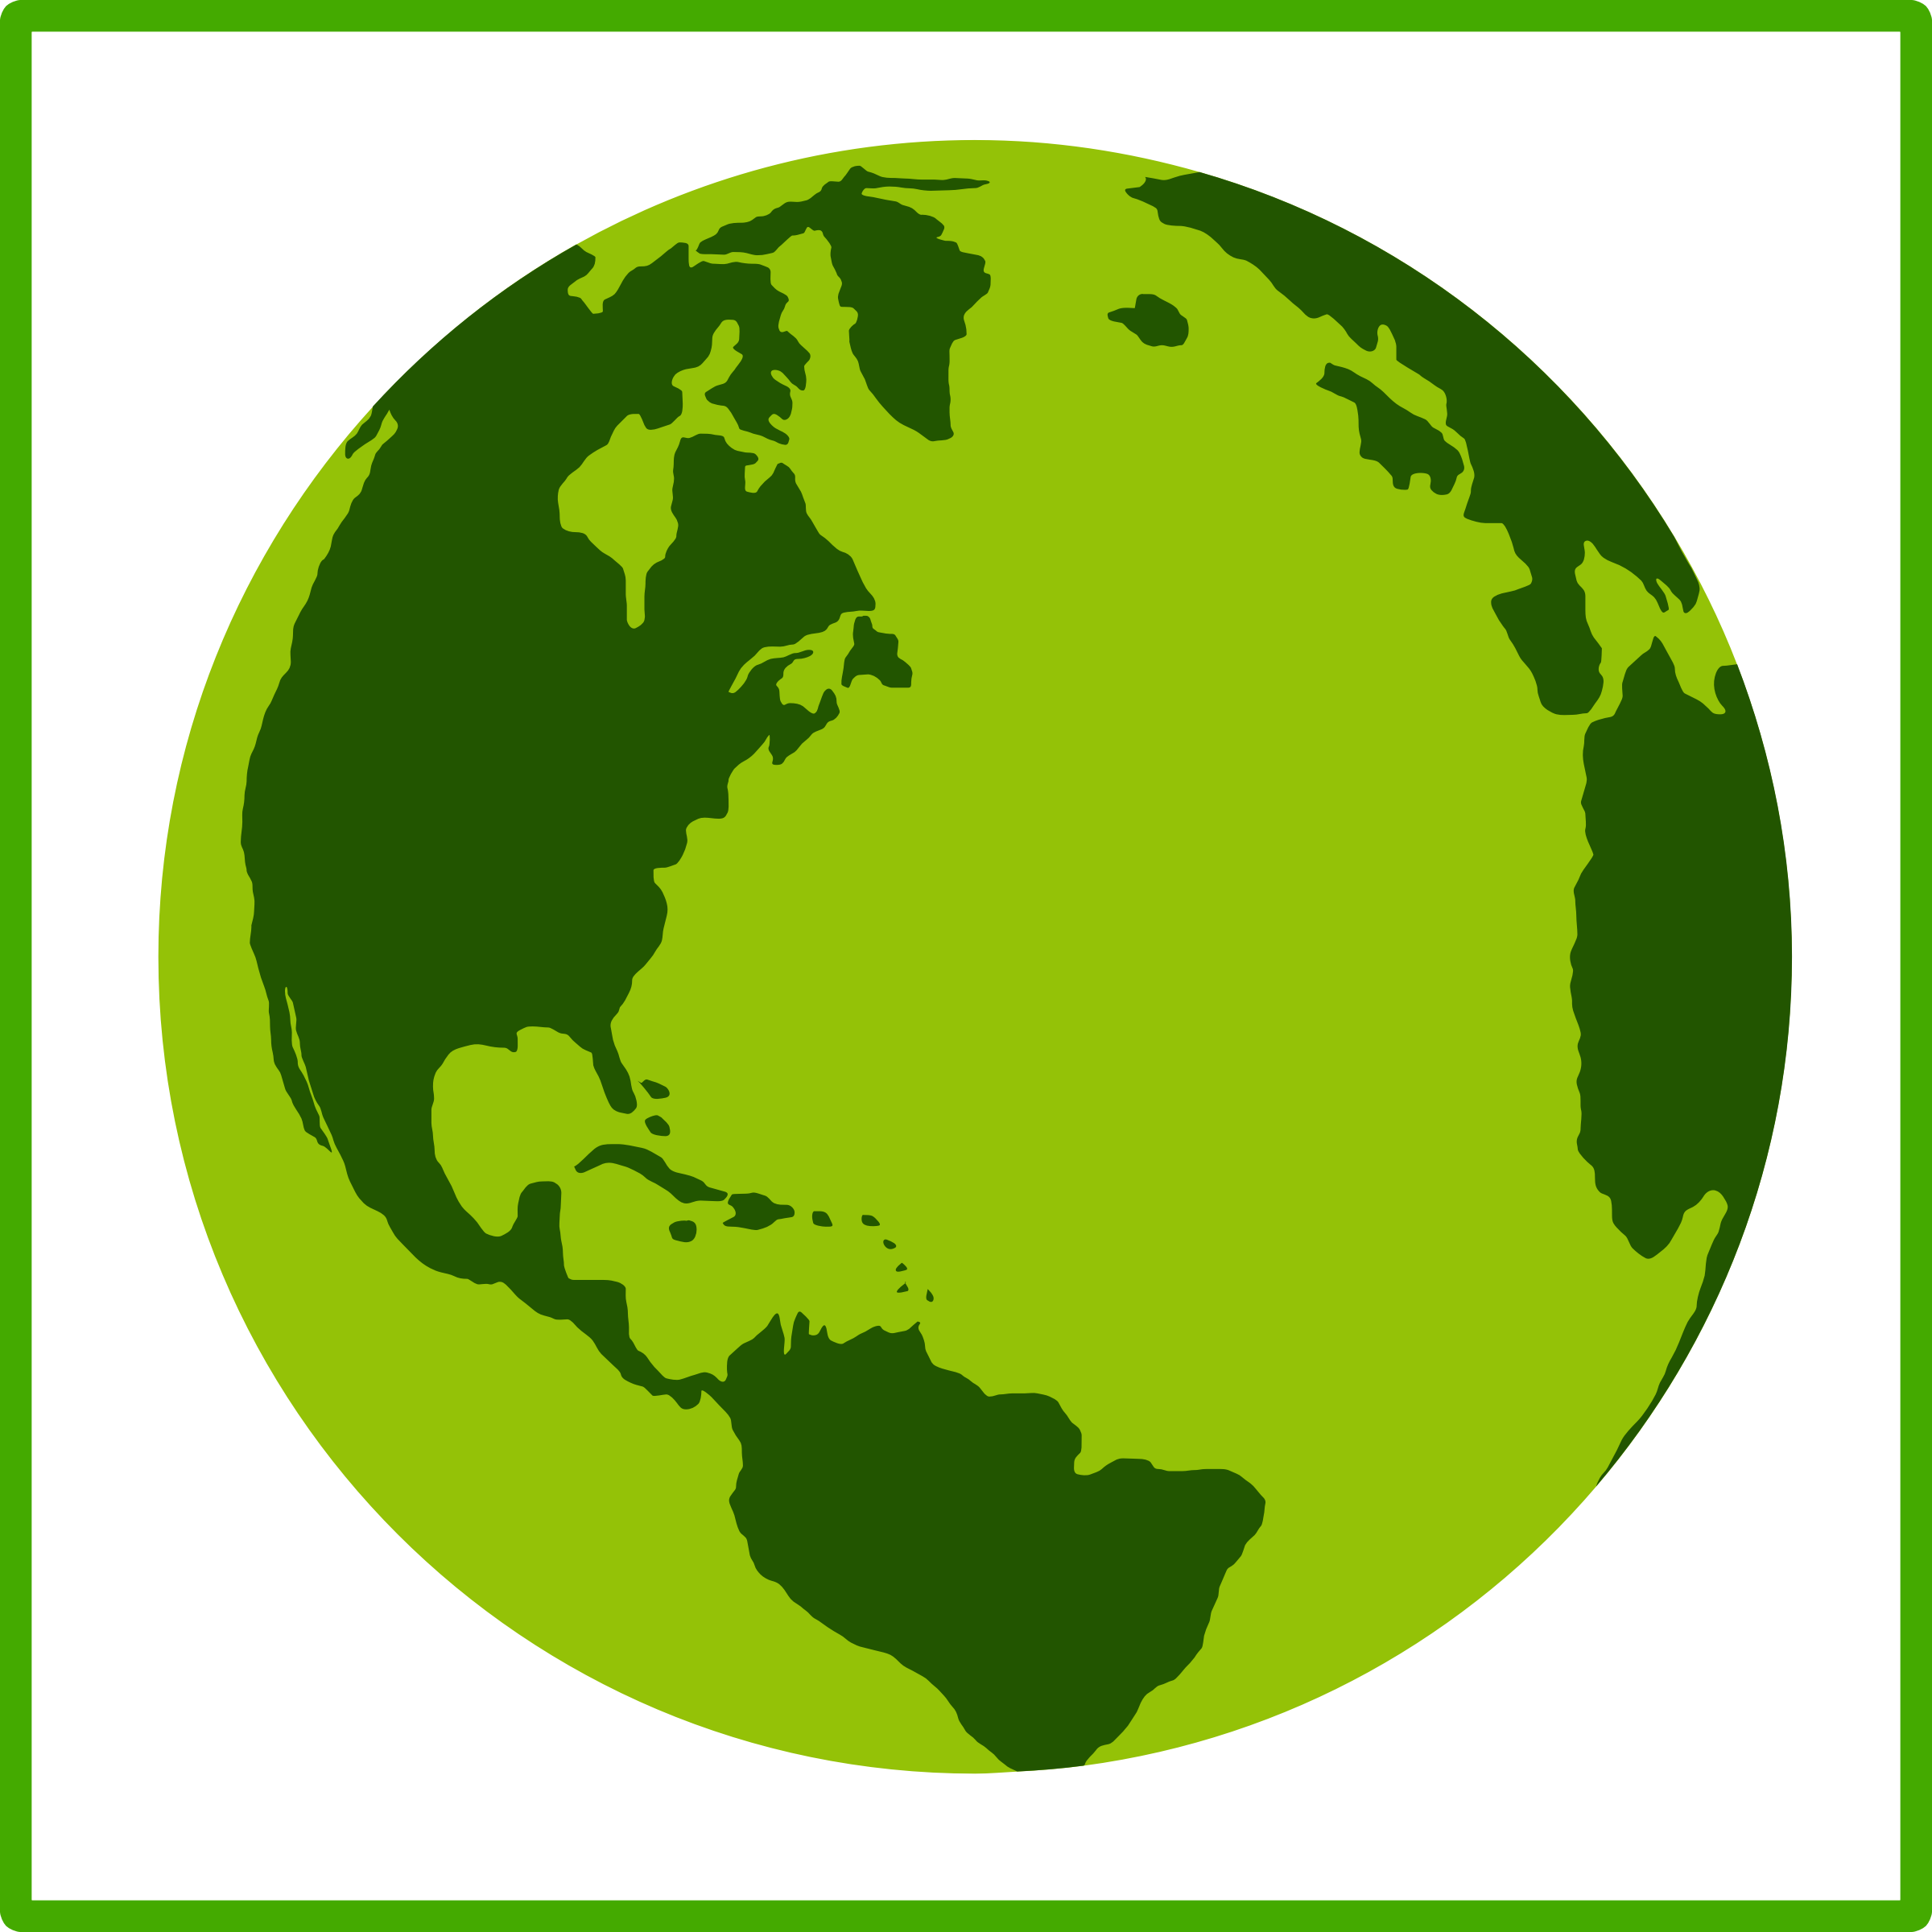 Eco green Earth icon by dominiquechappard